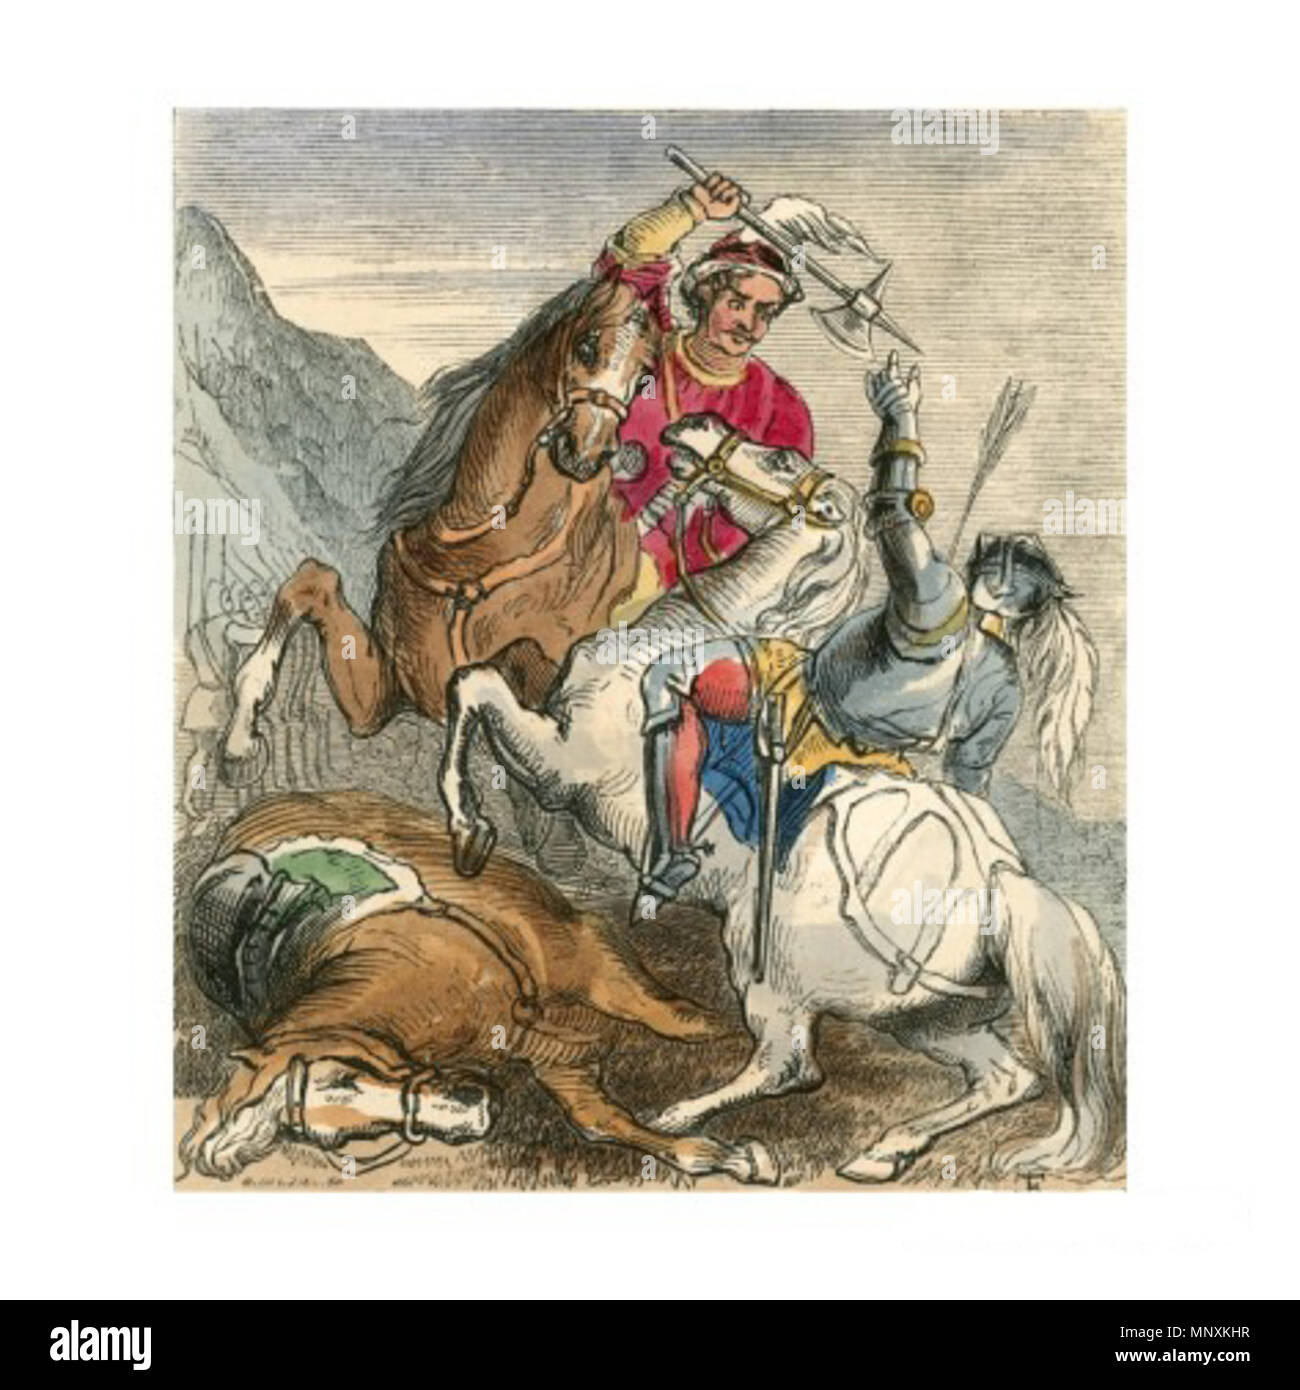 . English: Death of Earl Douglas. Illustration to the Ballad of Chevy Chase by F. Tayler. 19th century. John Frederick Tayler (1802-1889) was a British painter and printmaker 1163 Tayler Death of Earl Douglas - Stock Image